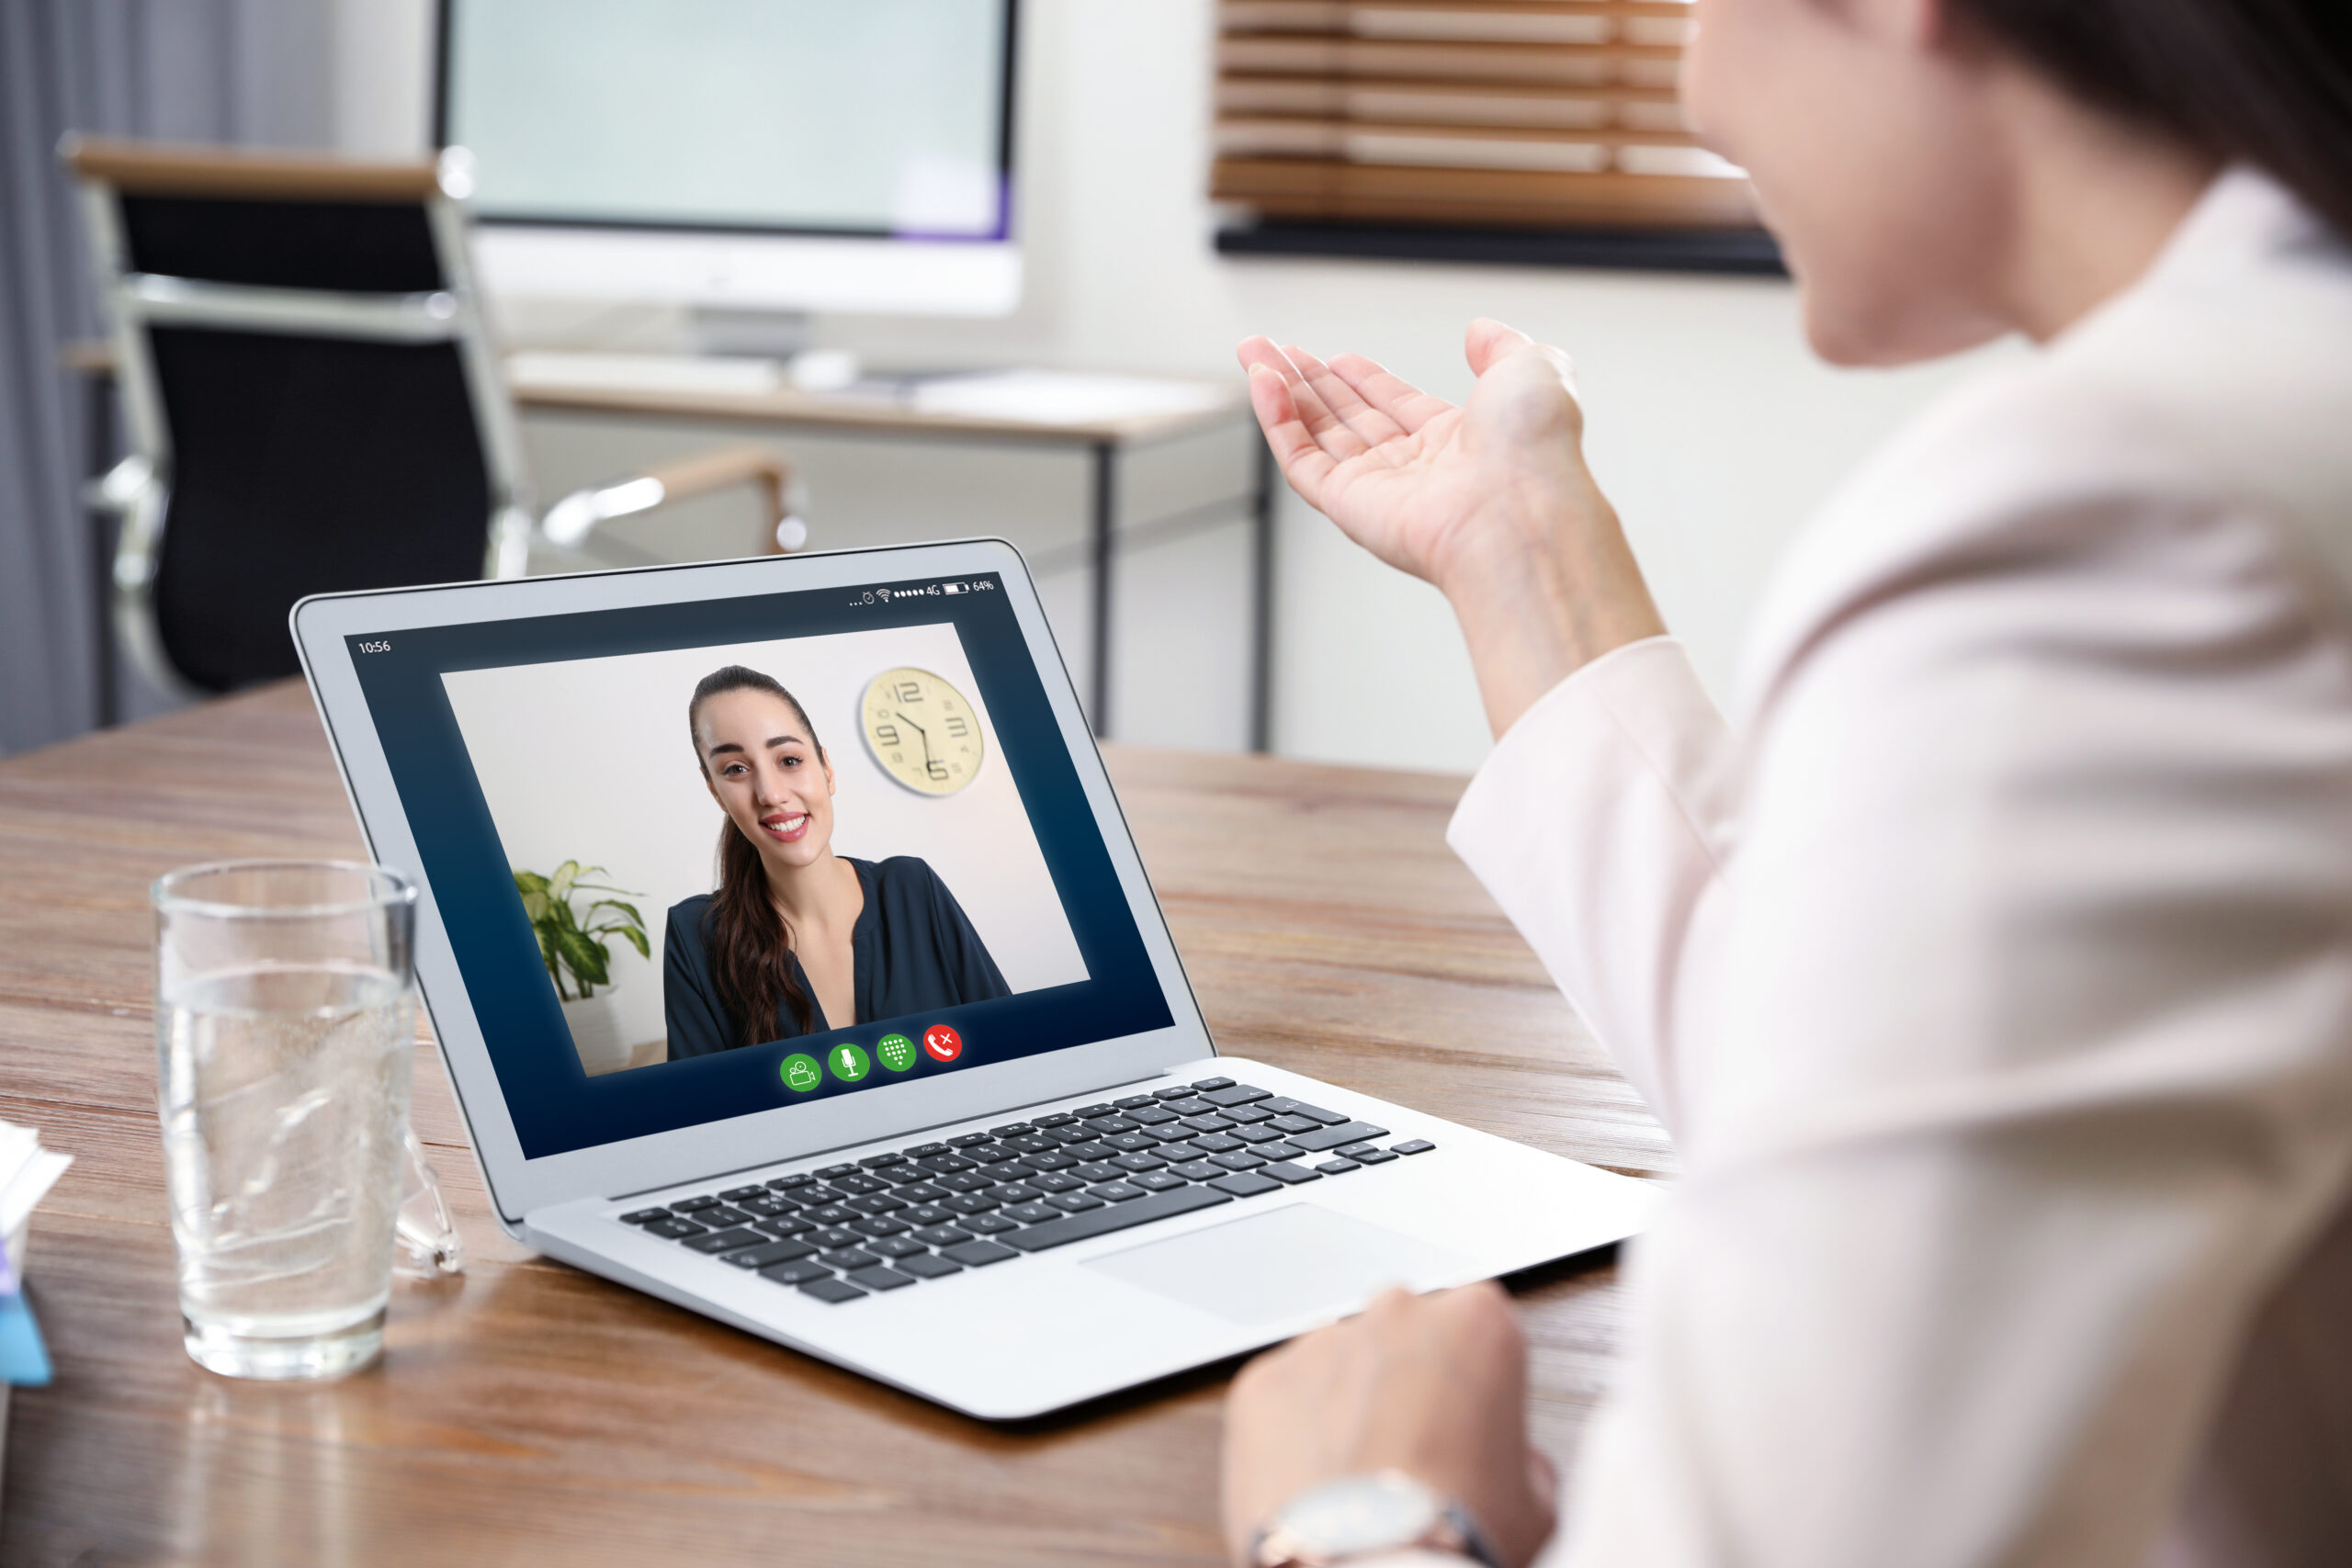 Woman using video chat on laptop in home office, closeup. Space